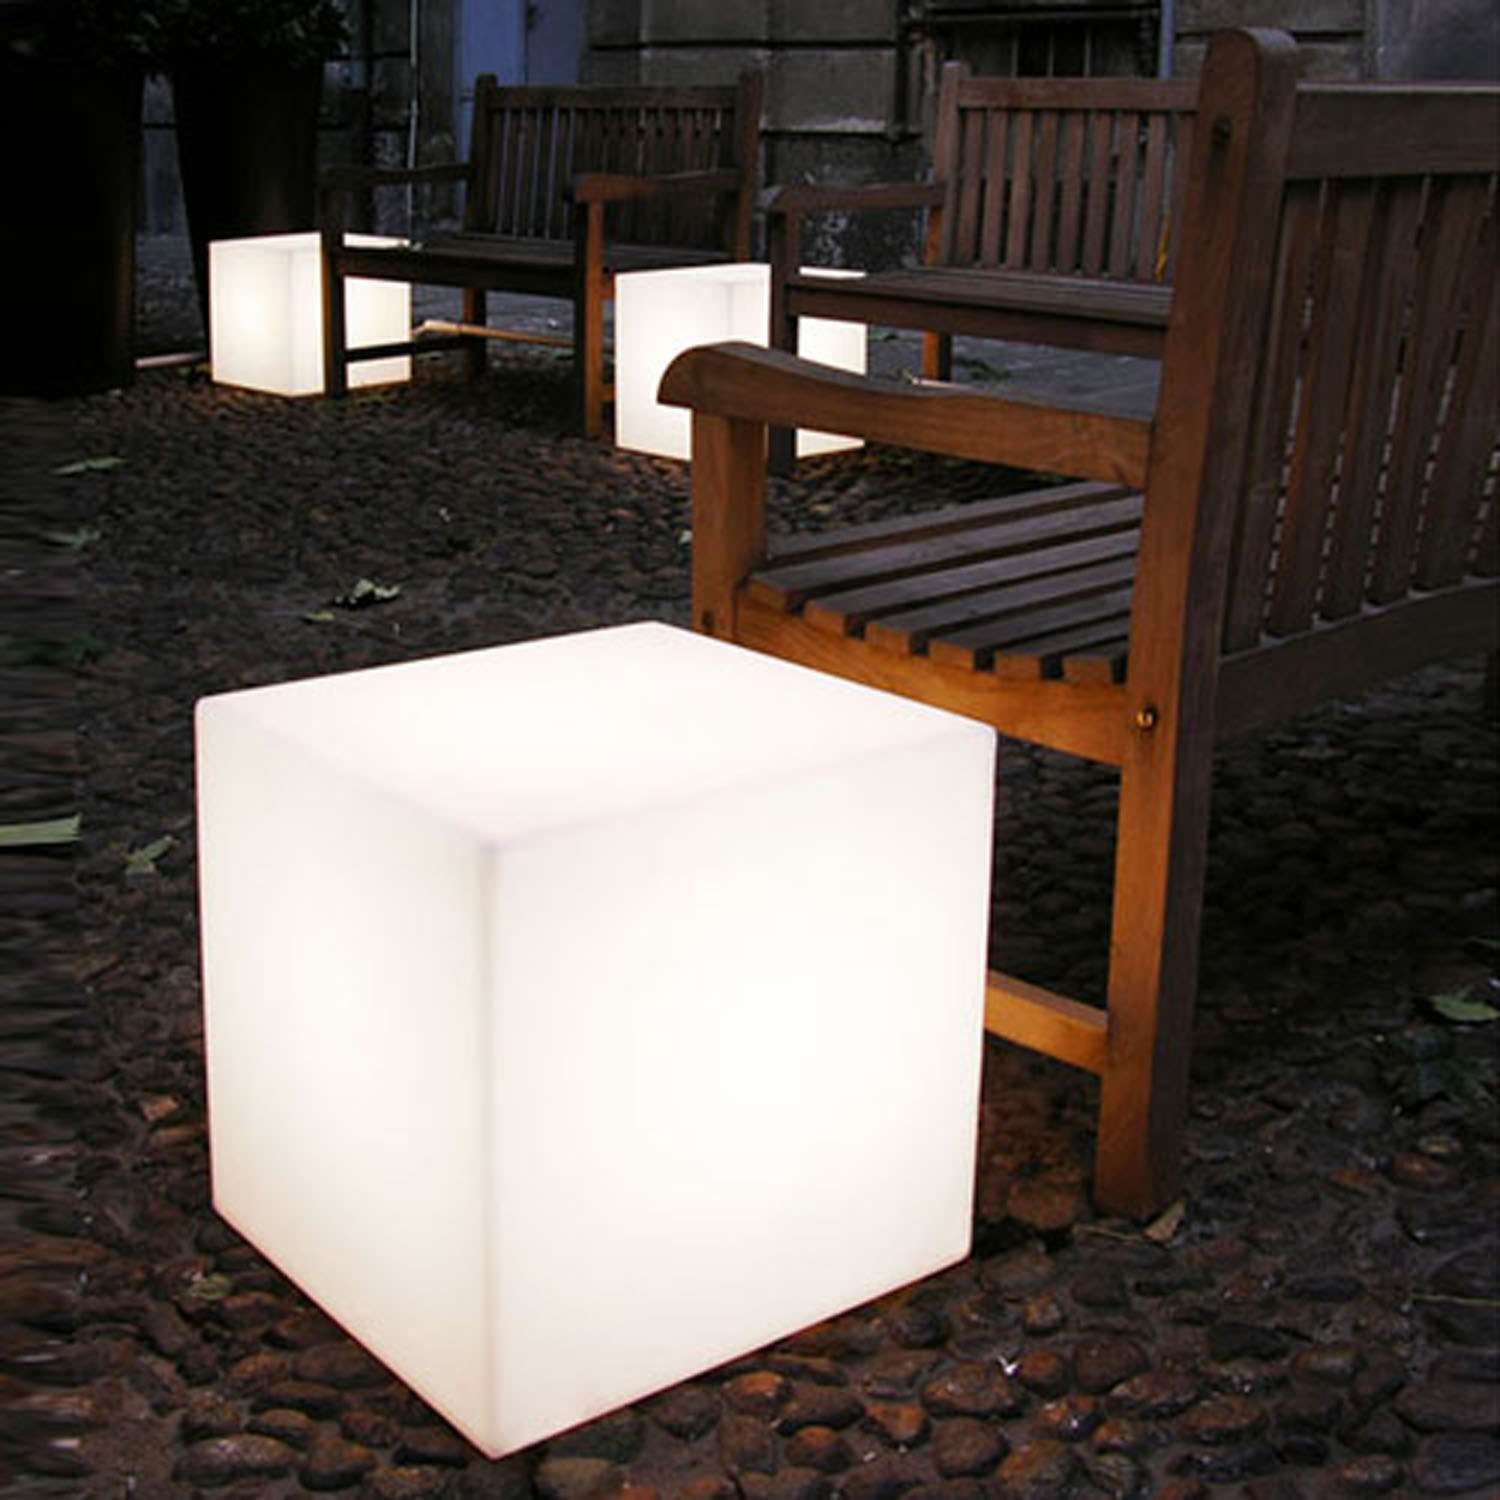 Shown In Use Outdoors Indoor Outdoor Lighting Decor Interior Design Outdoor Furniture Sets